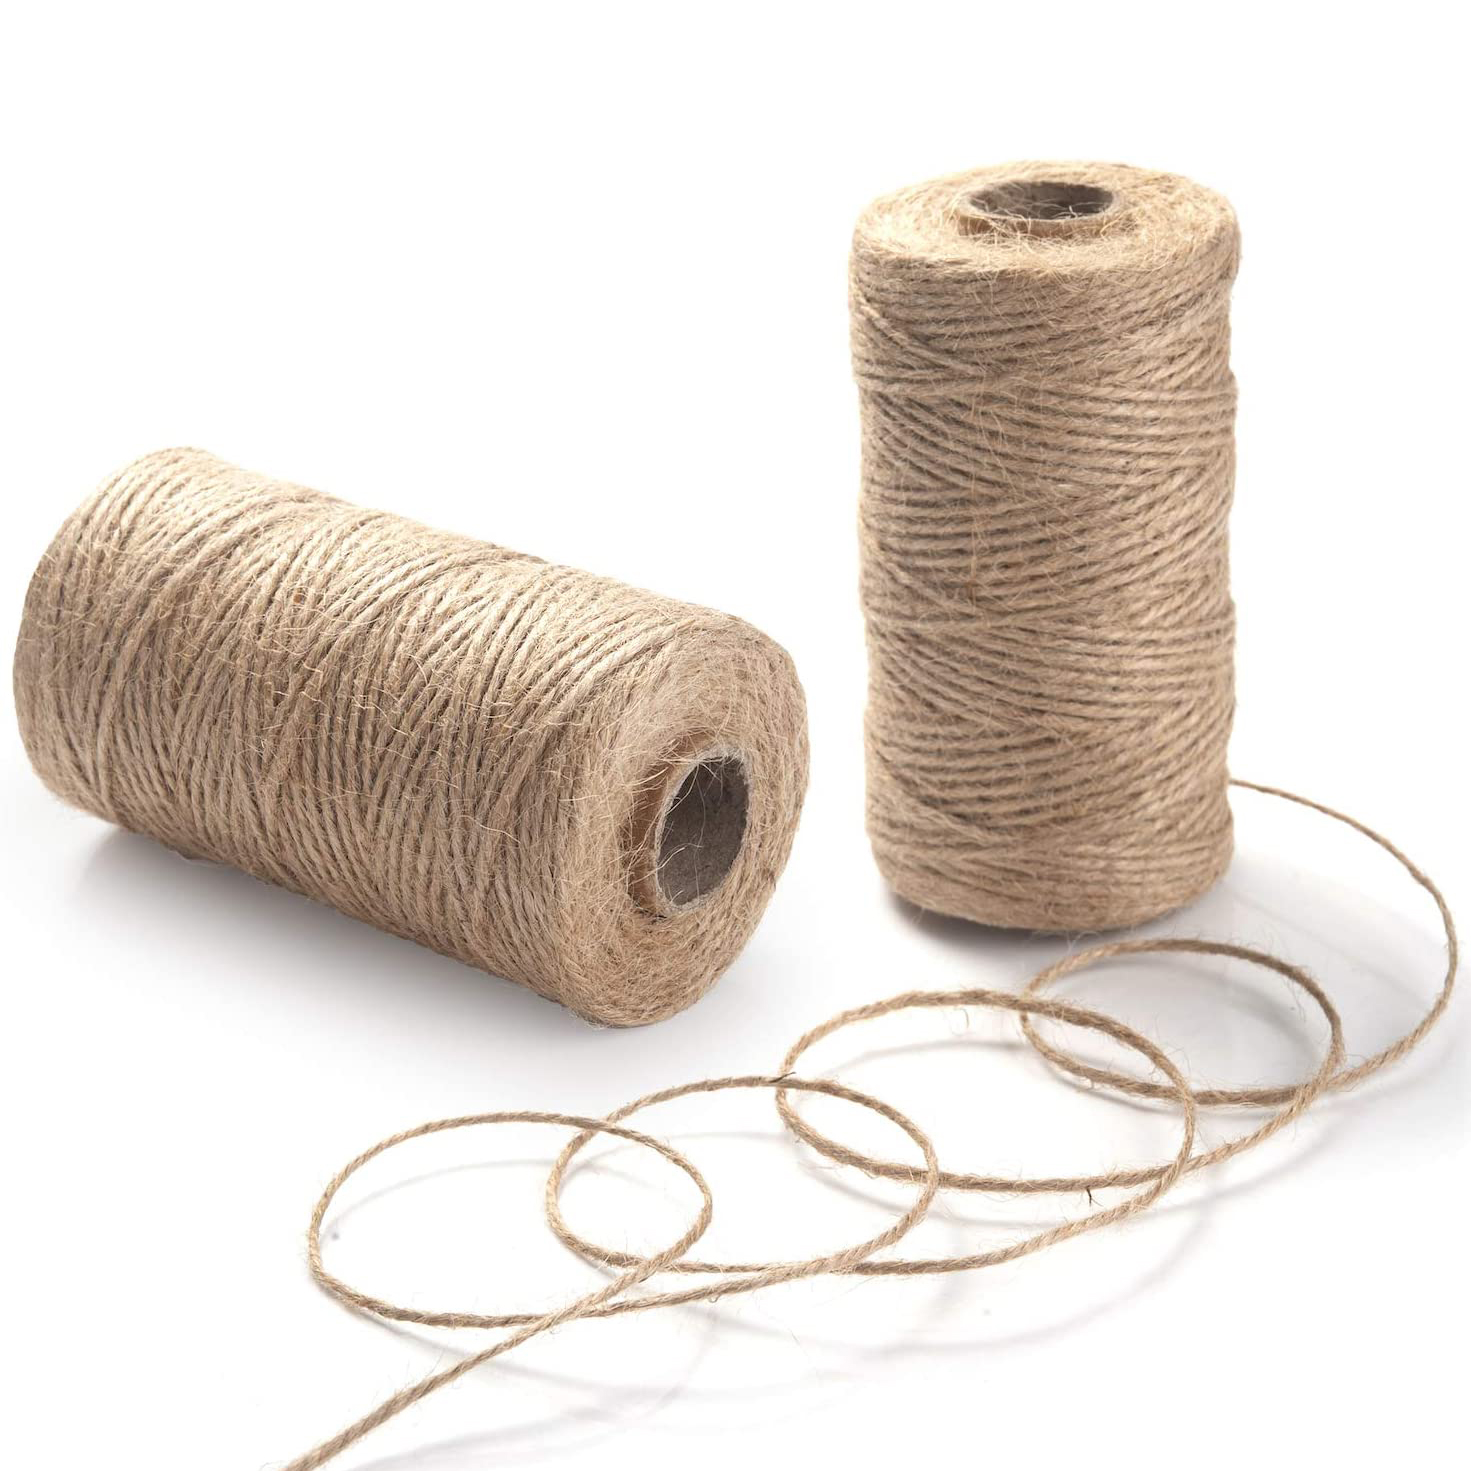 ECO-FRIENDLY NATURAL FIBER JUTE YARN FROM CHINA